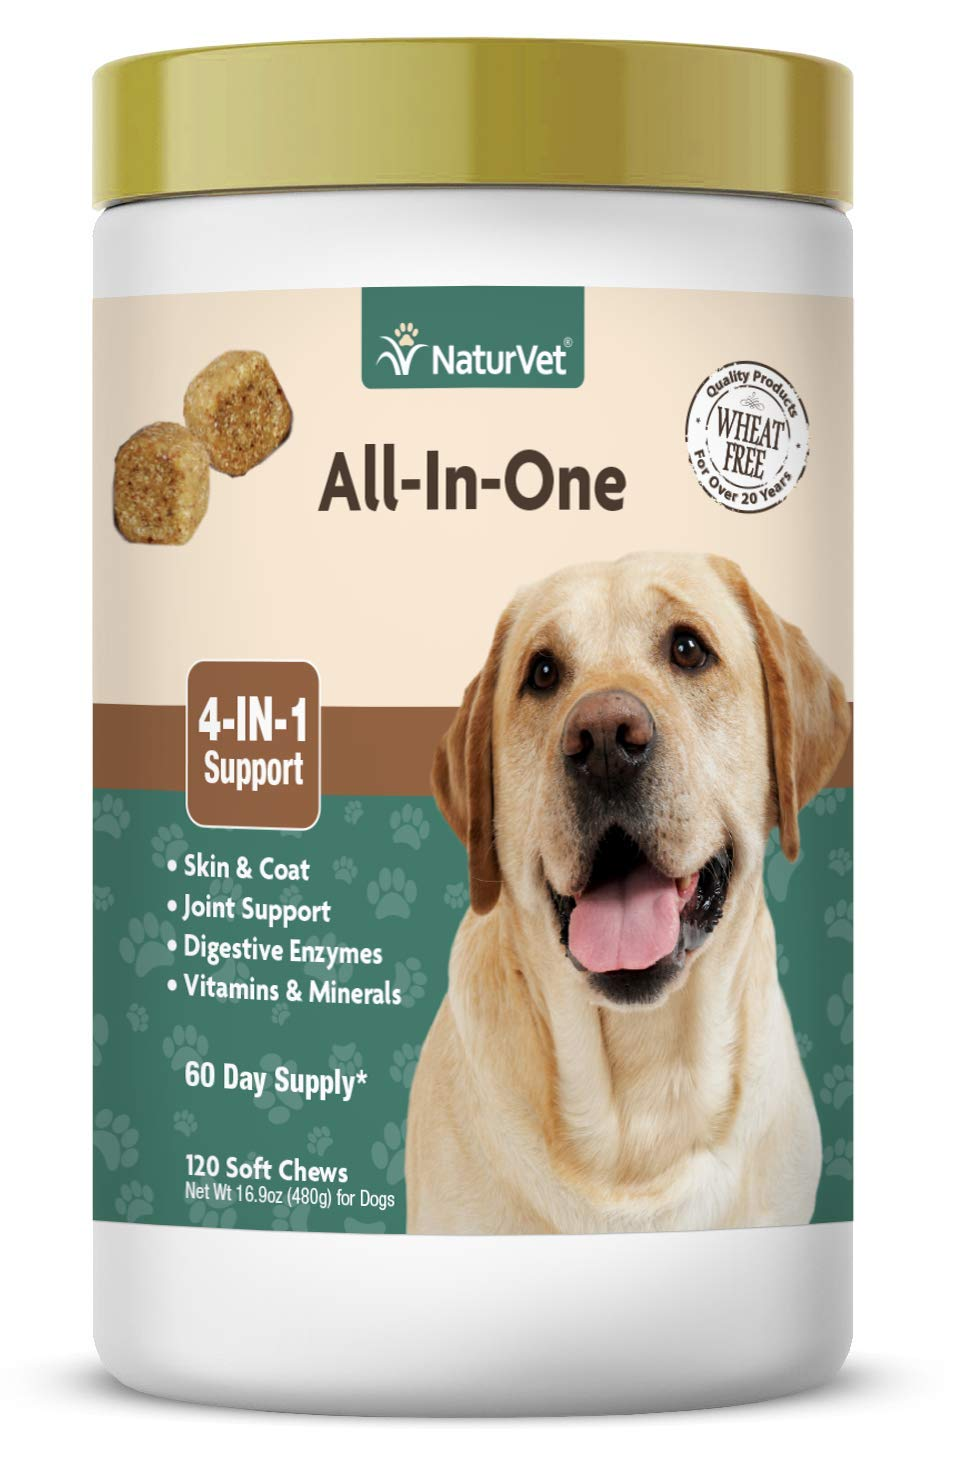 NaturVet - All-in-One Support - Helps Support Your Dog's Essential Needs & Overall Health - Digestion, Skin, Coat, Vitamins & Minerals, Joint Support - 120 Soft Chews by NaturVet